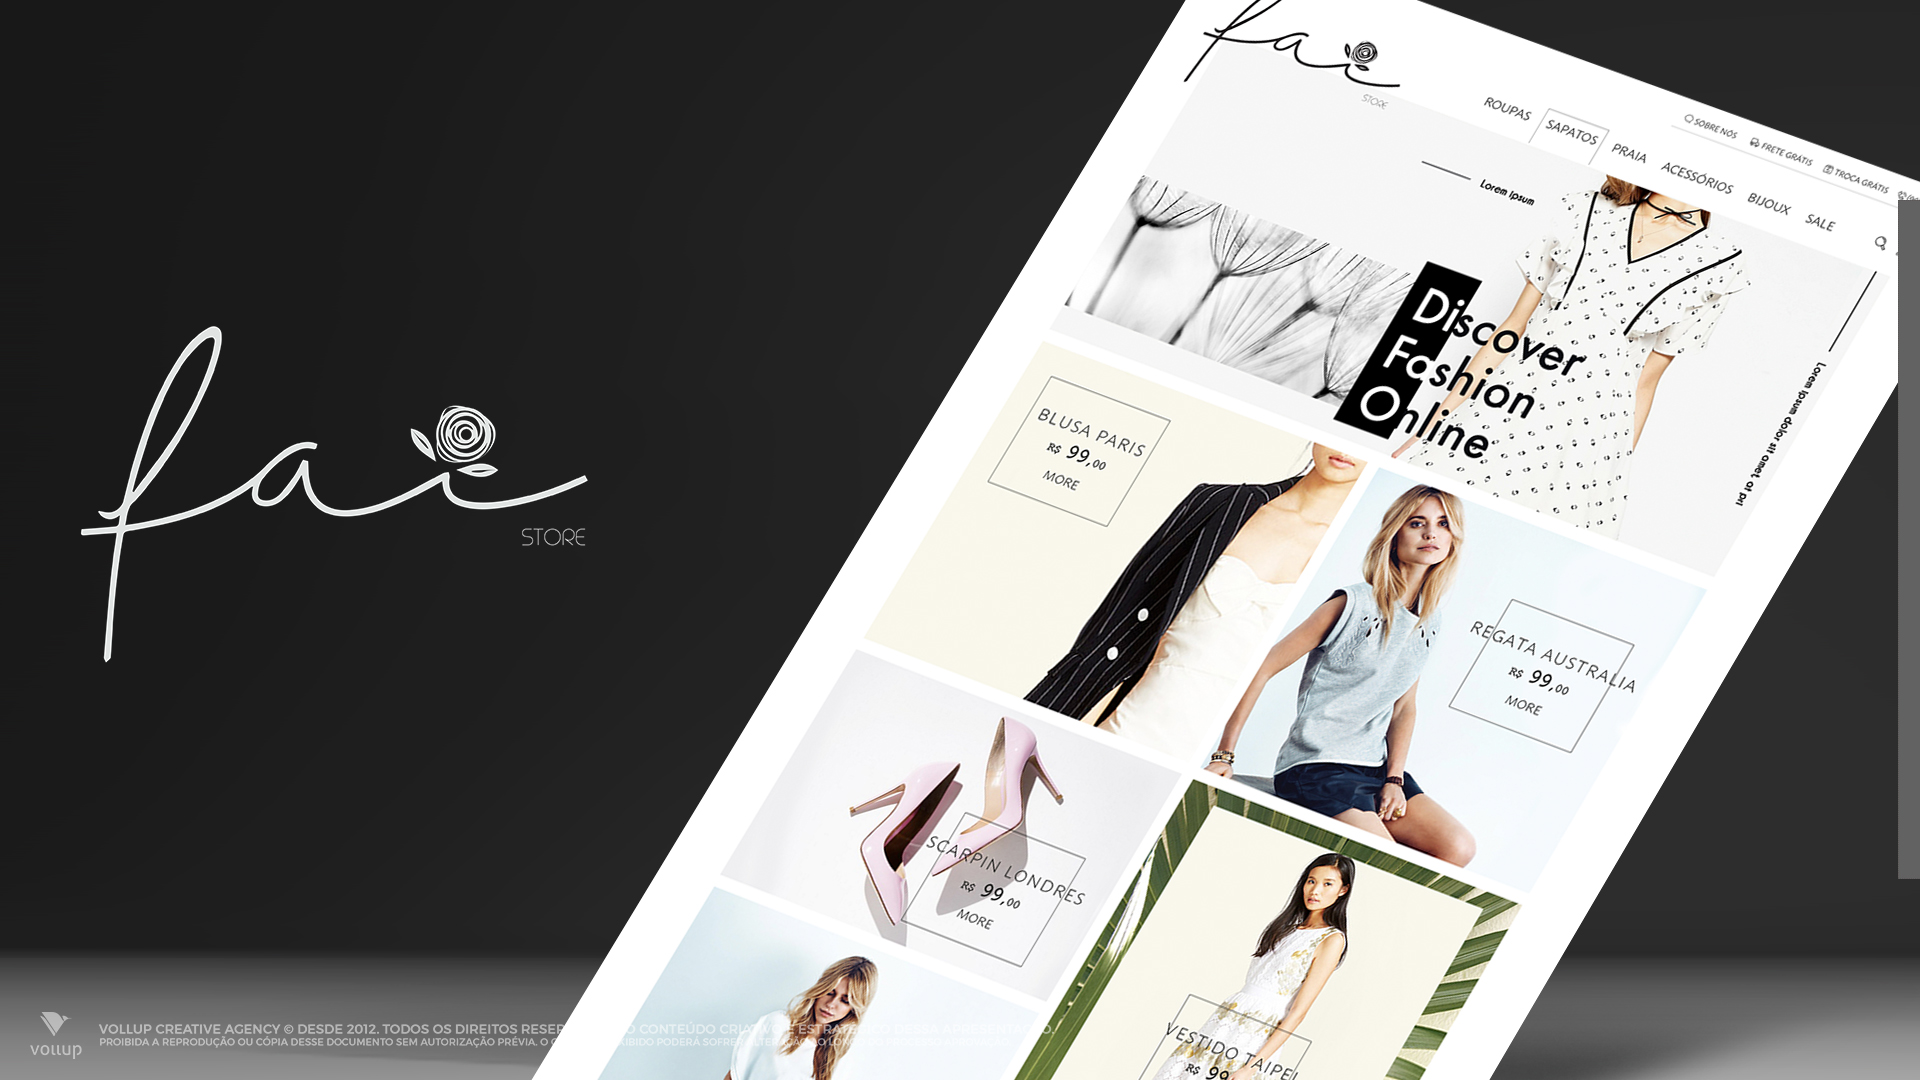 Fai Store e-commerce layout